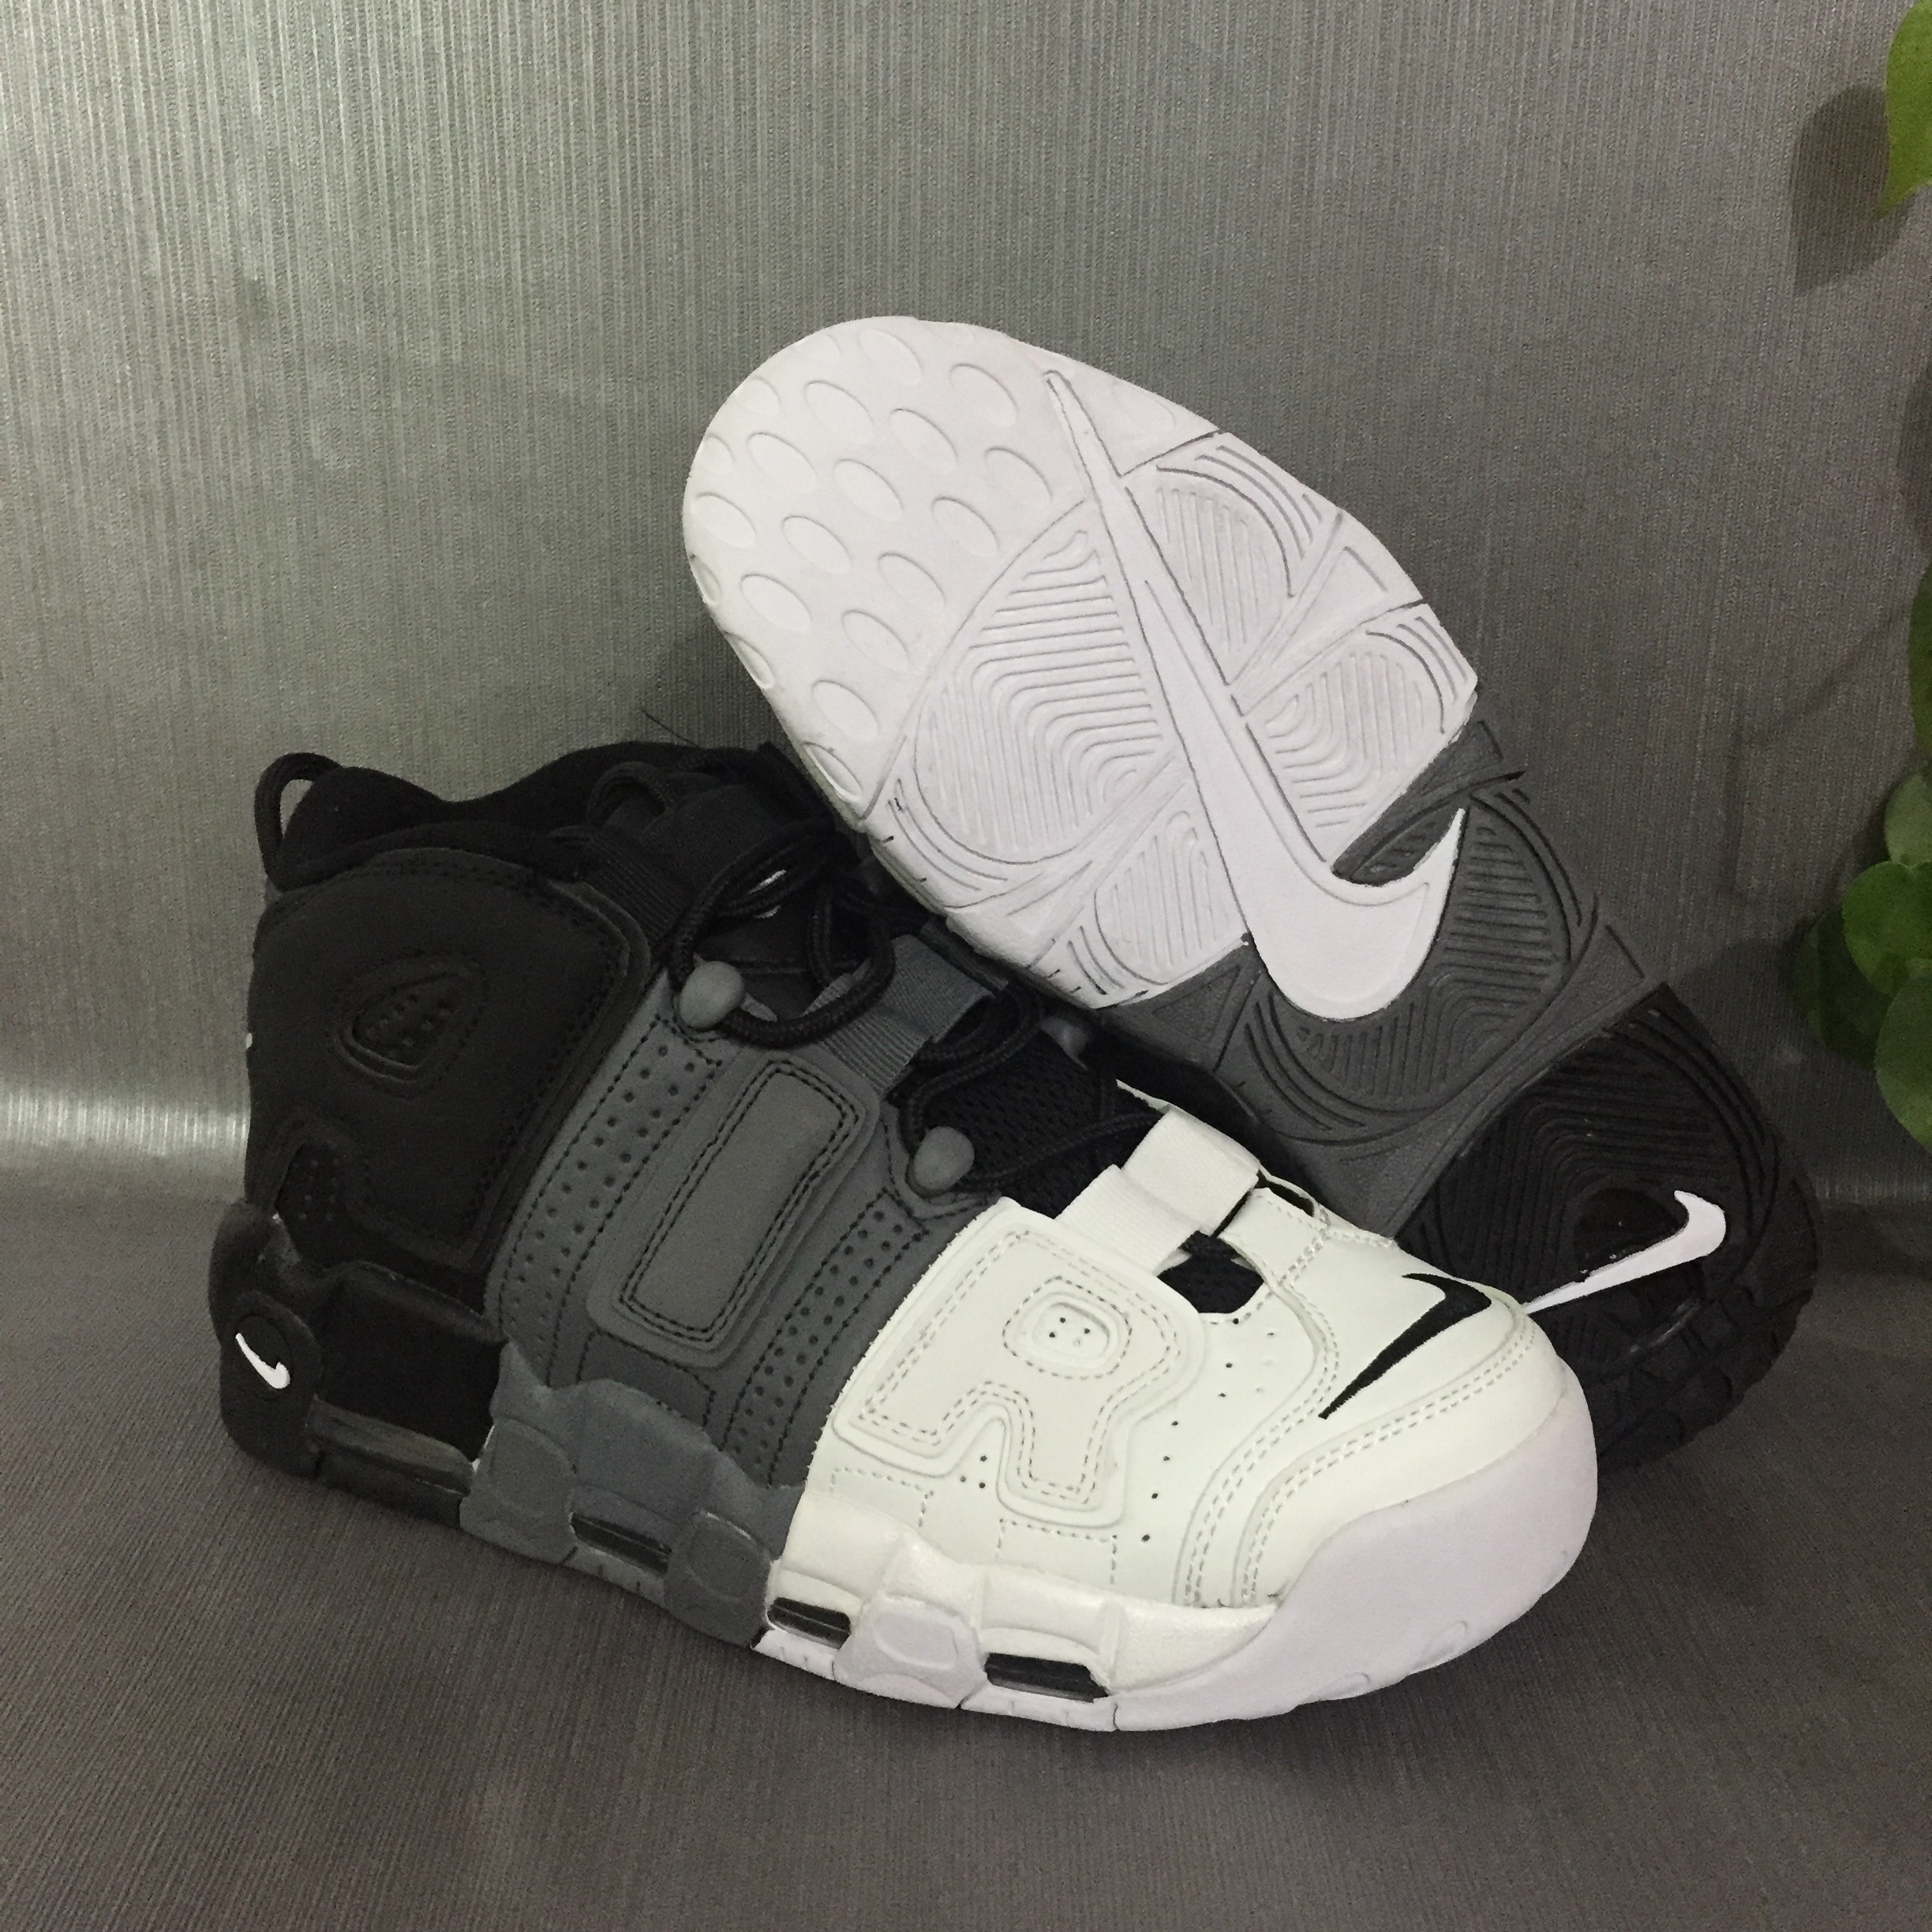 Nike Air More Uptempo Tri Color Mens Nike Air Max Running Shoes SD22 Getfashionsstore.